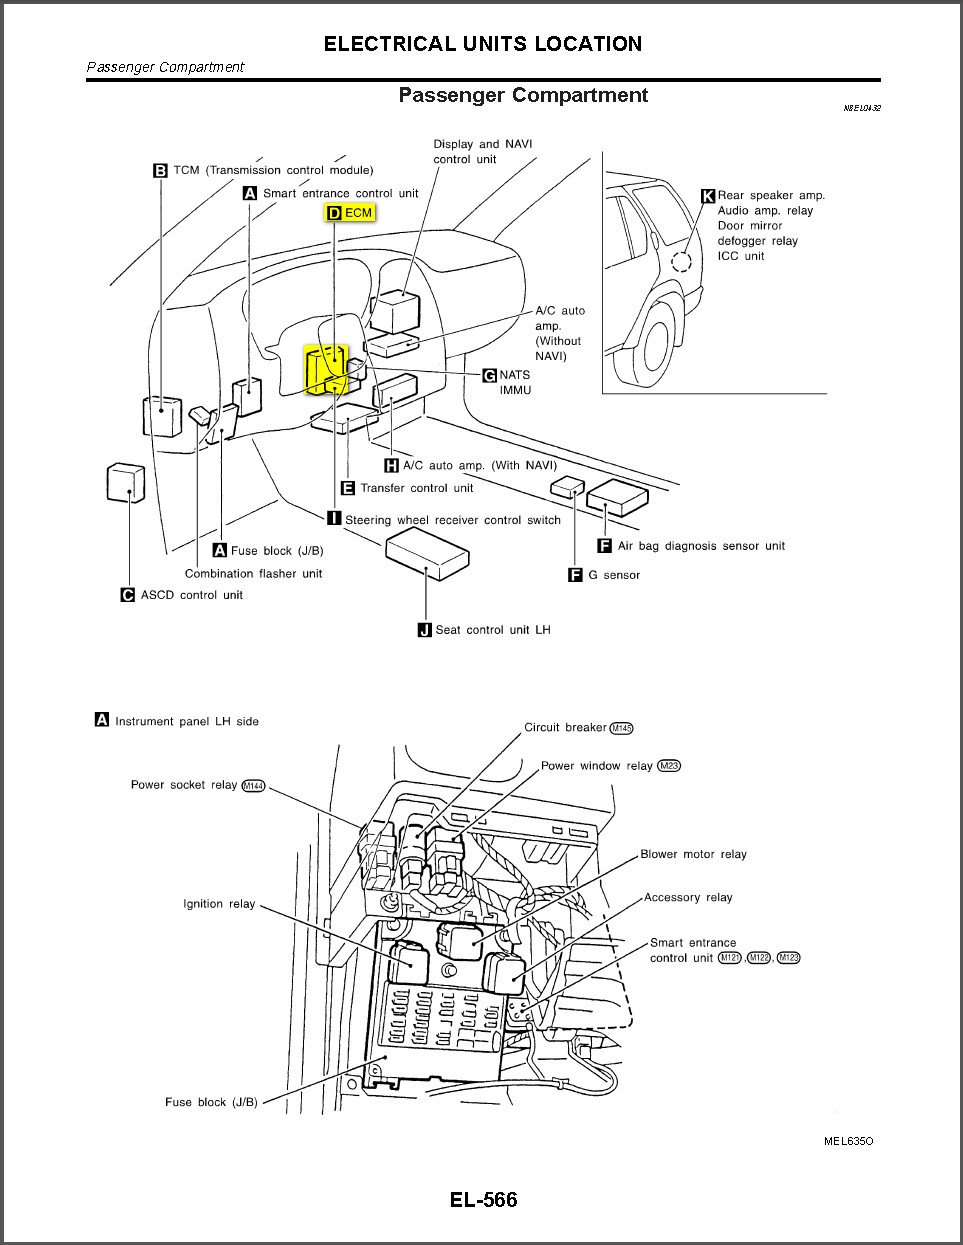 2001 Audi A4 Ecu Wiring Diagram. Audi. Auto Wiring Diagram